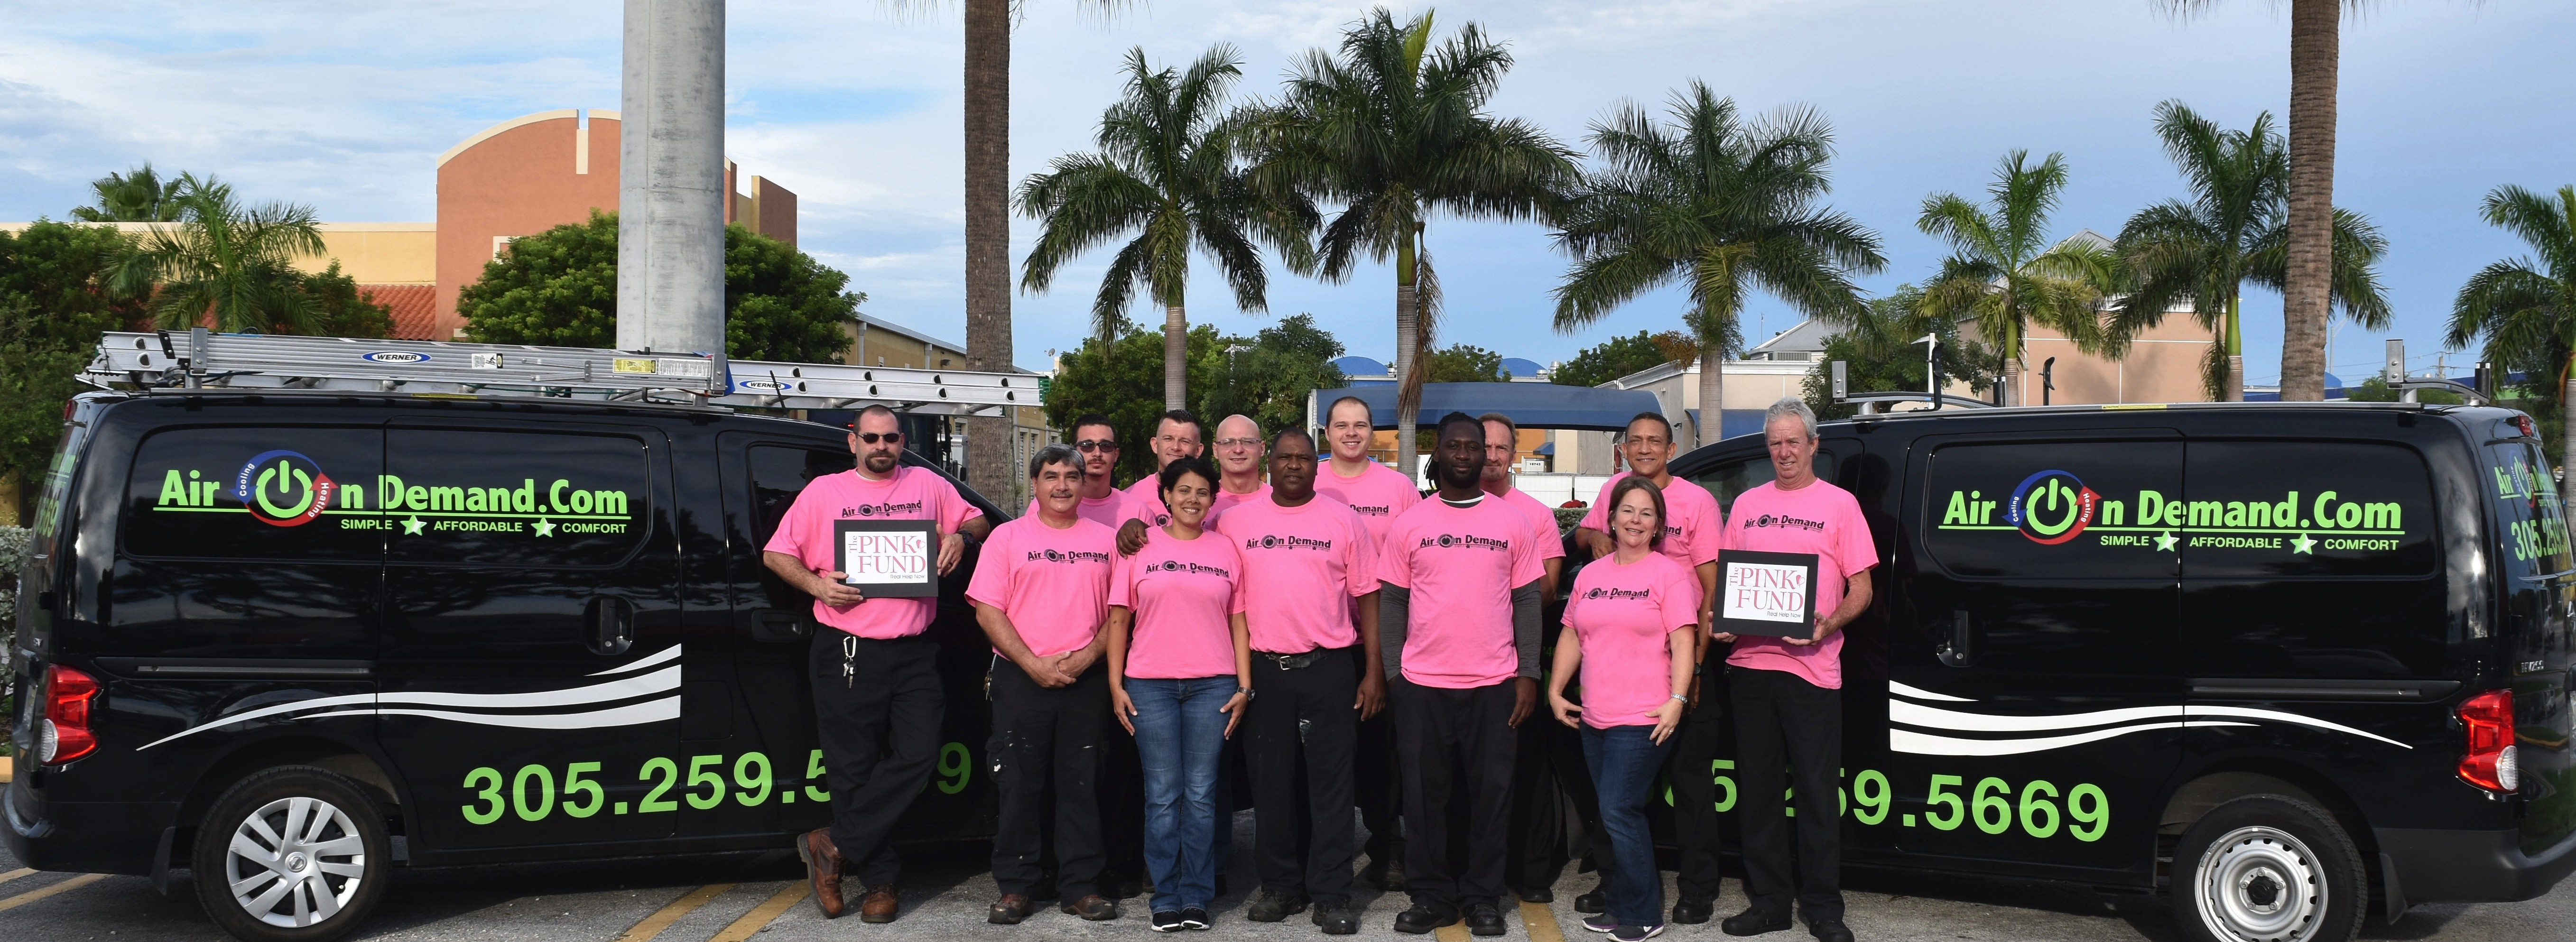 Pink_Fund_to_support_Breast_Cancer_Patients_in_Miami_Dade